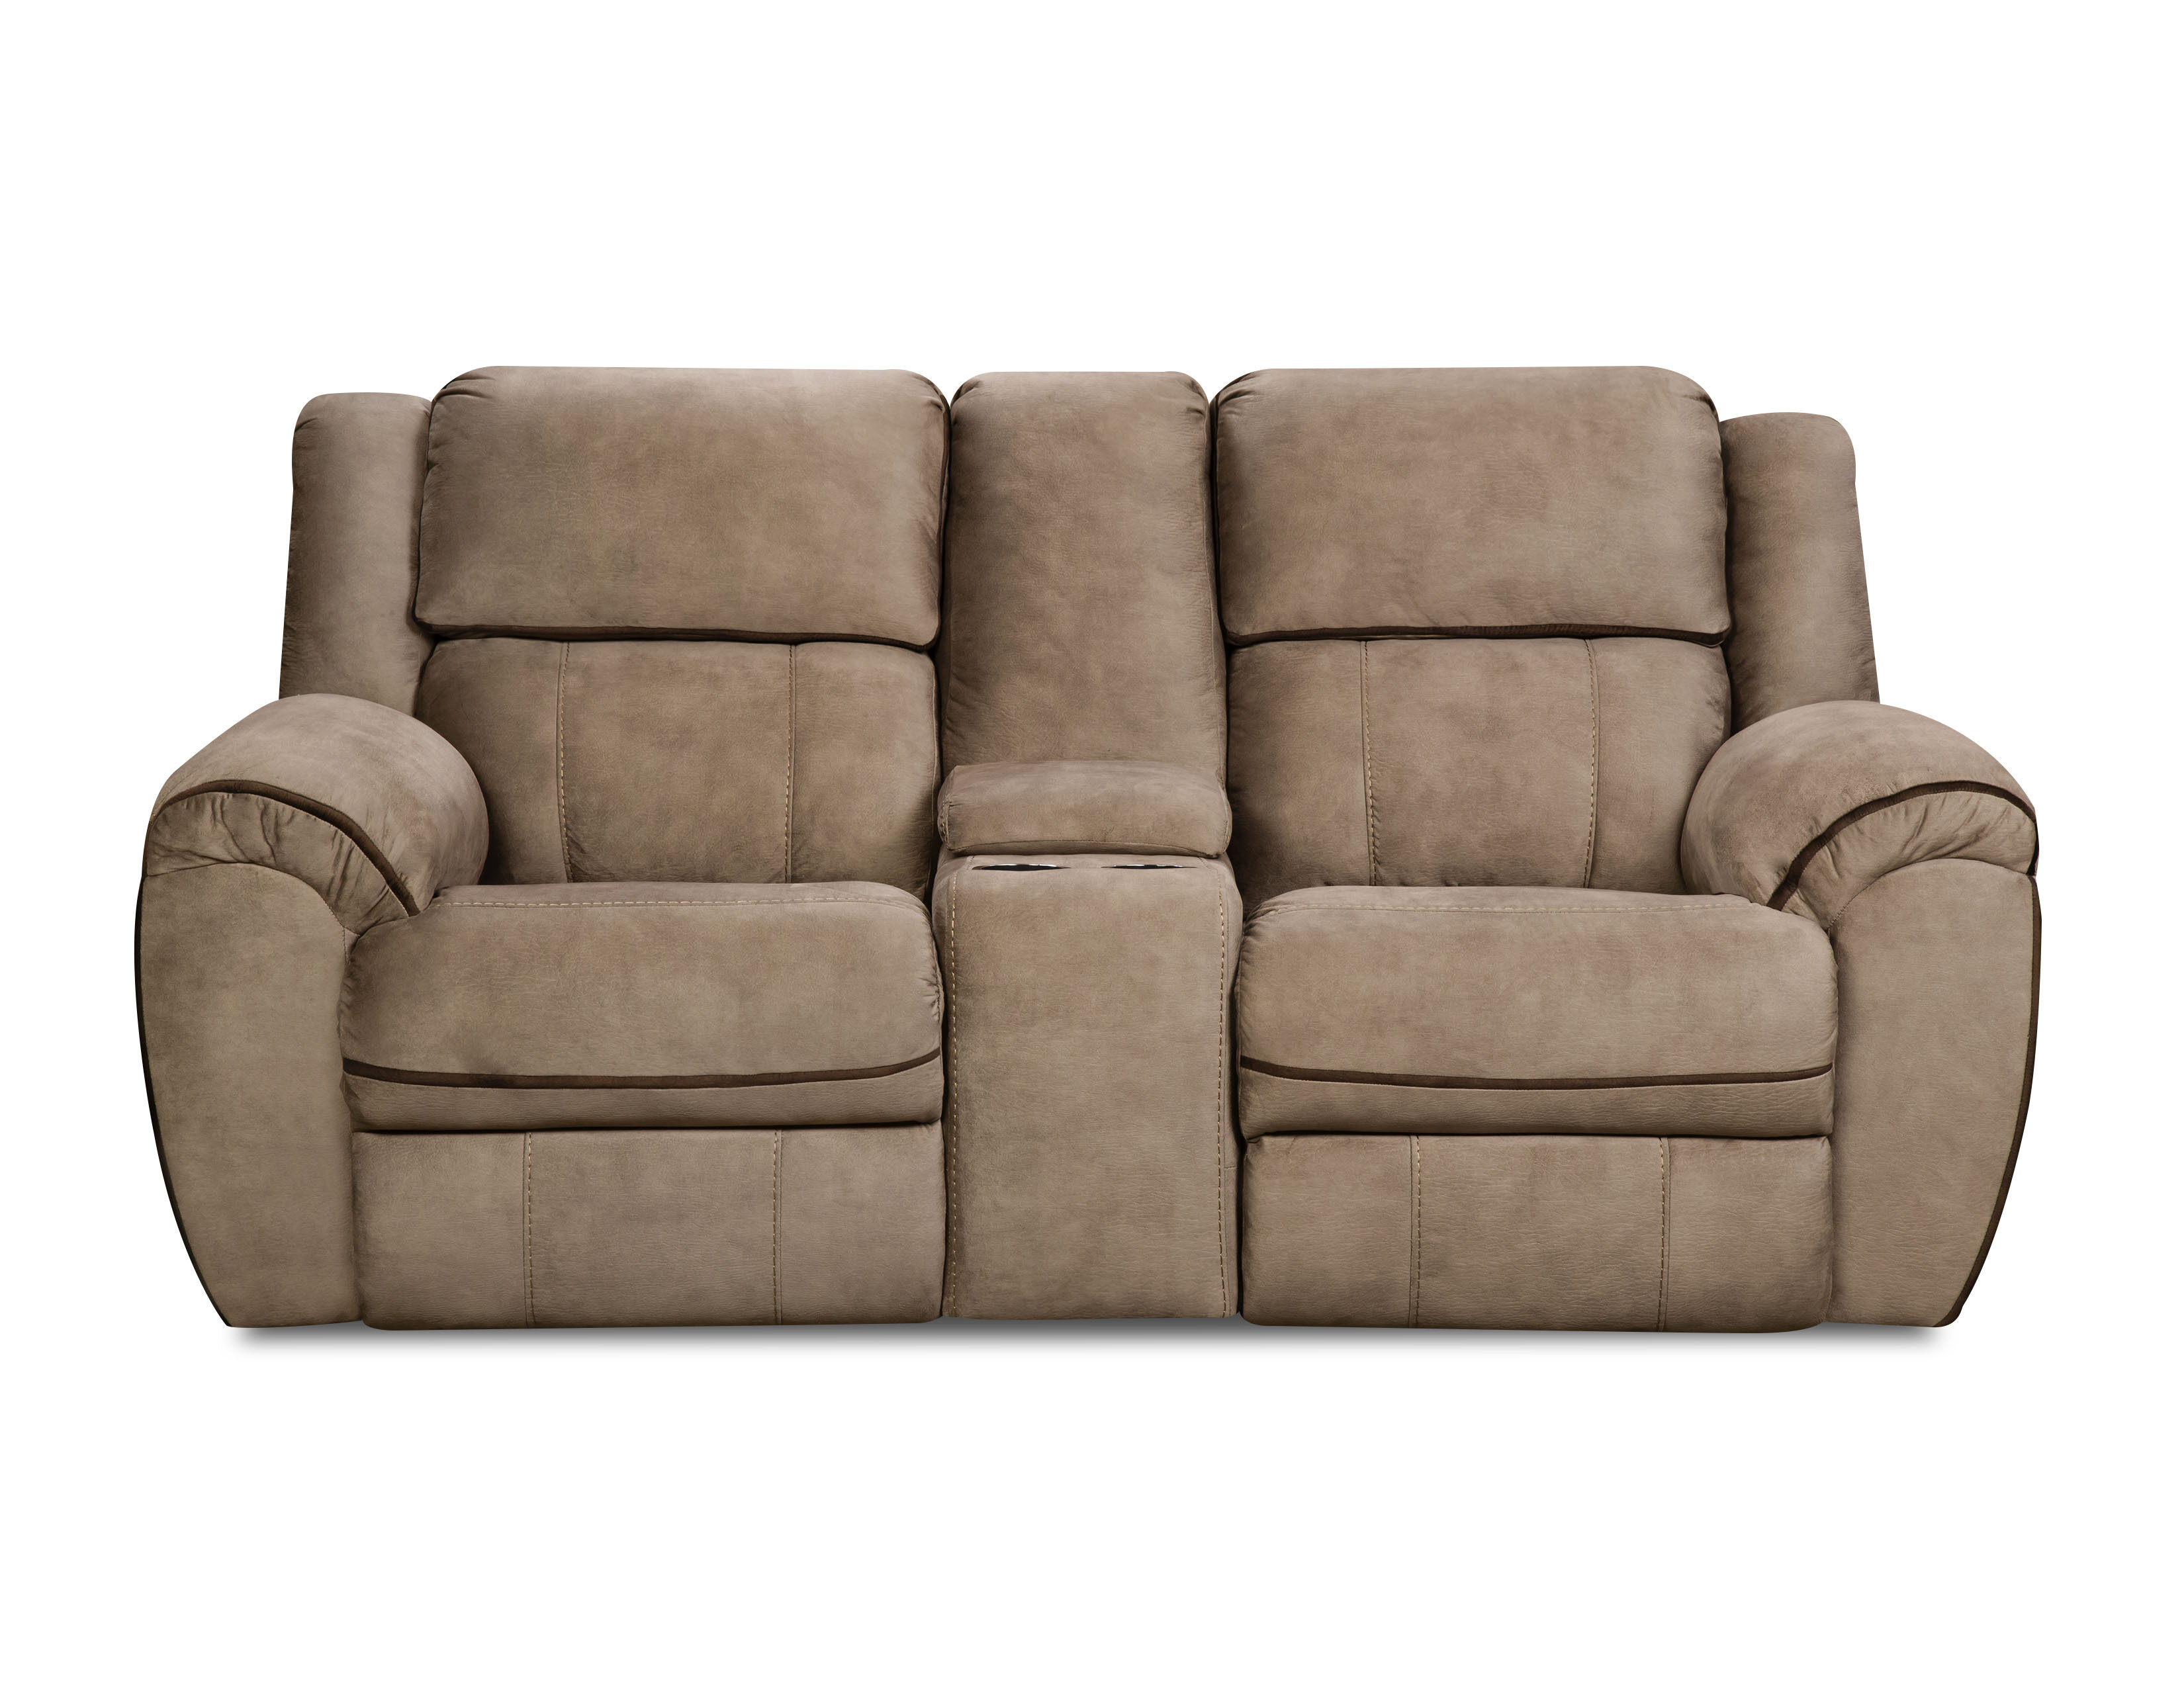 Reclining Loveseats Sofas You Ll Love Wayfair ~ Reclining Sofa And Loveseat